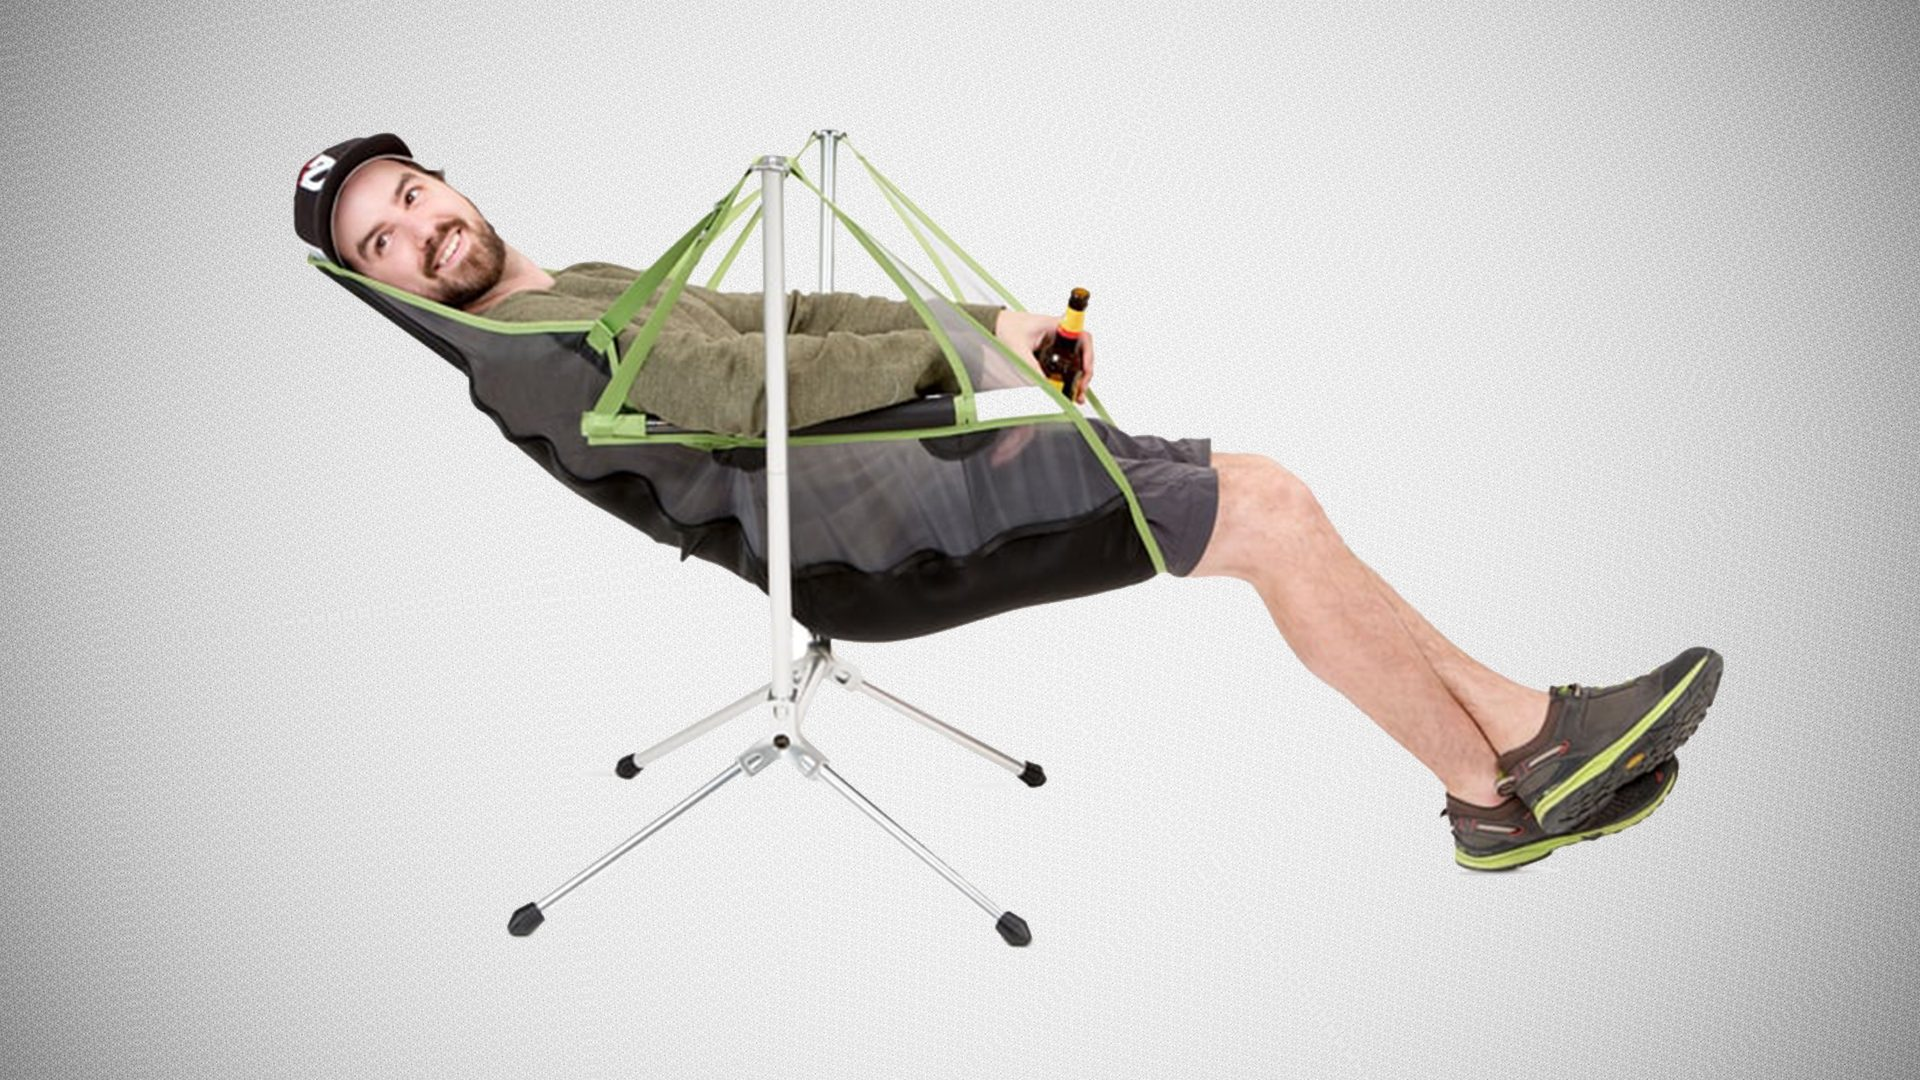 This Stargazing Chair Is The Ultimate Camp Chair For Your